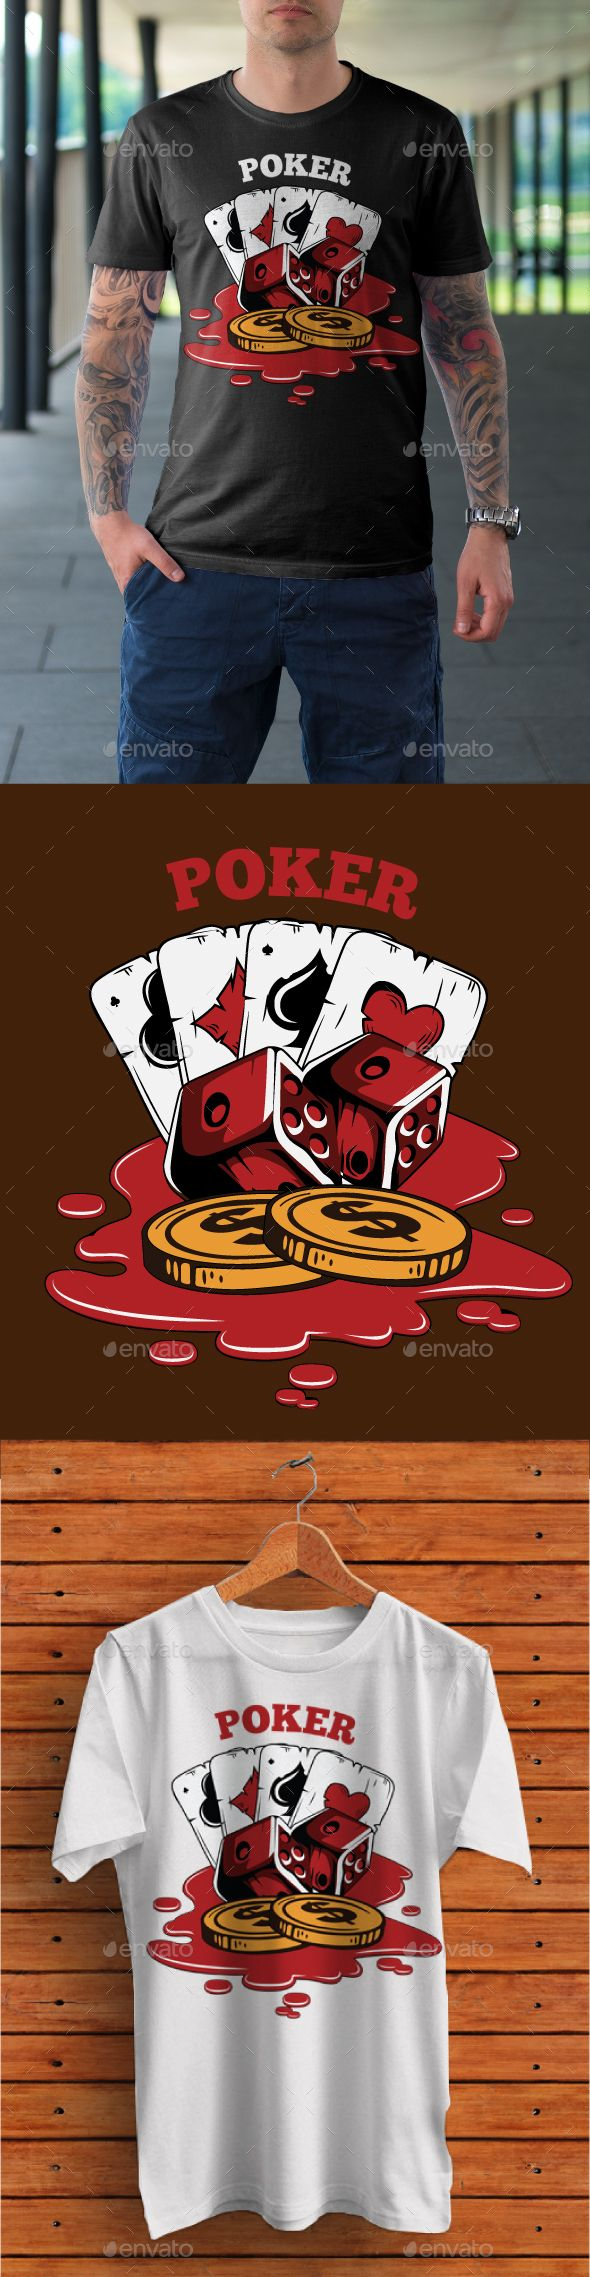 T shirt design editor online free